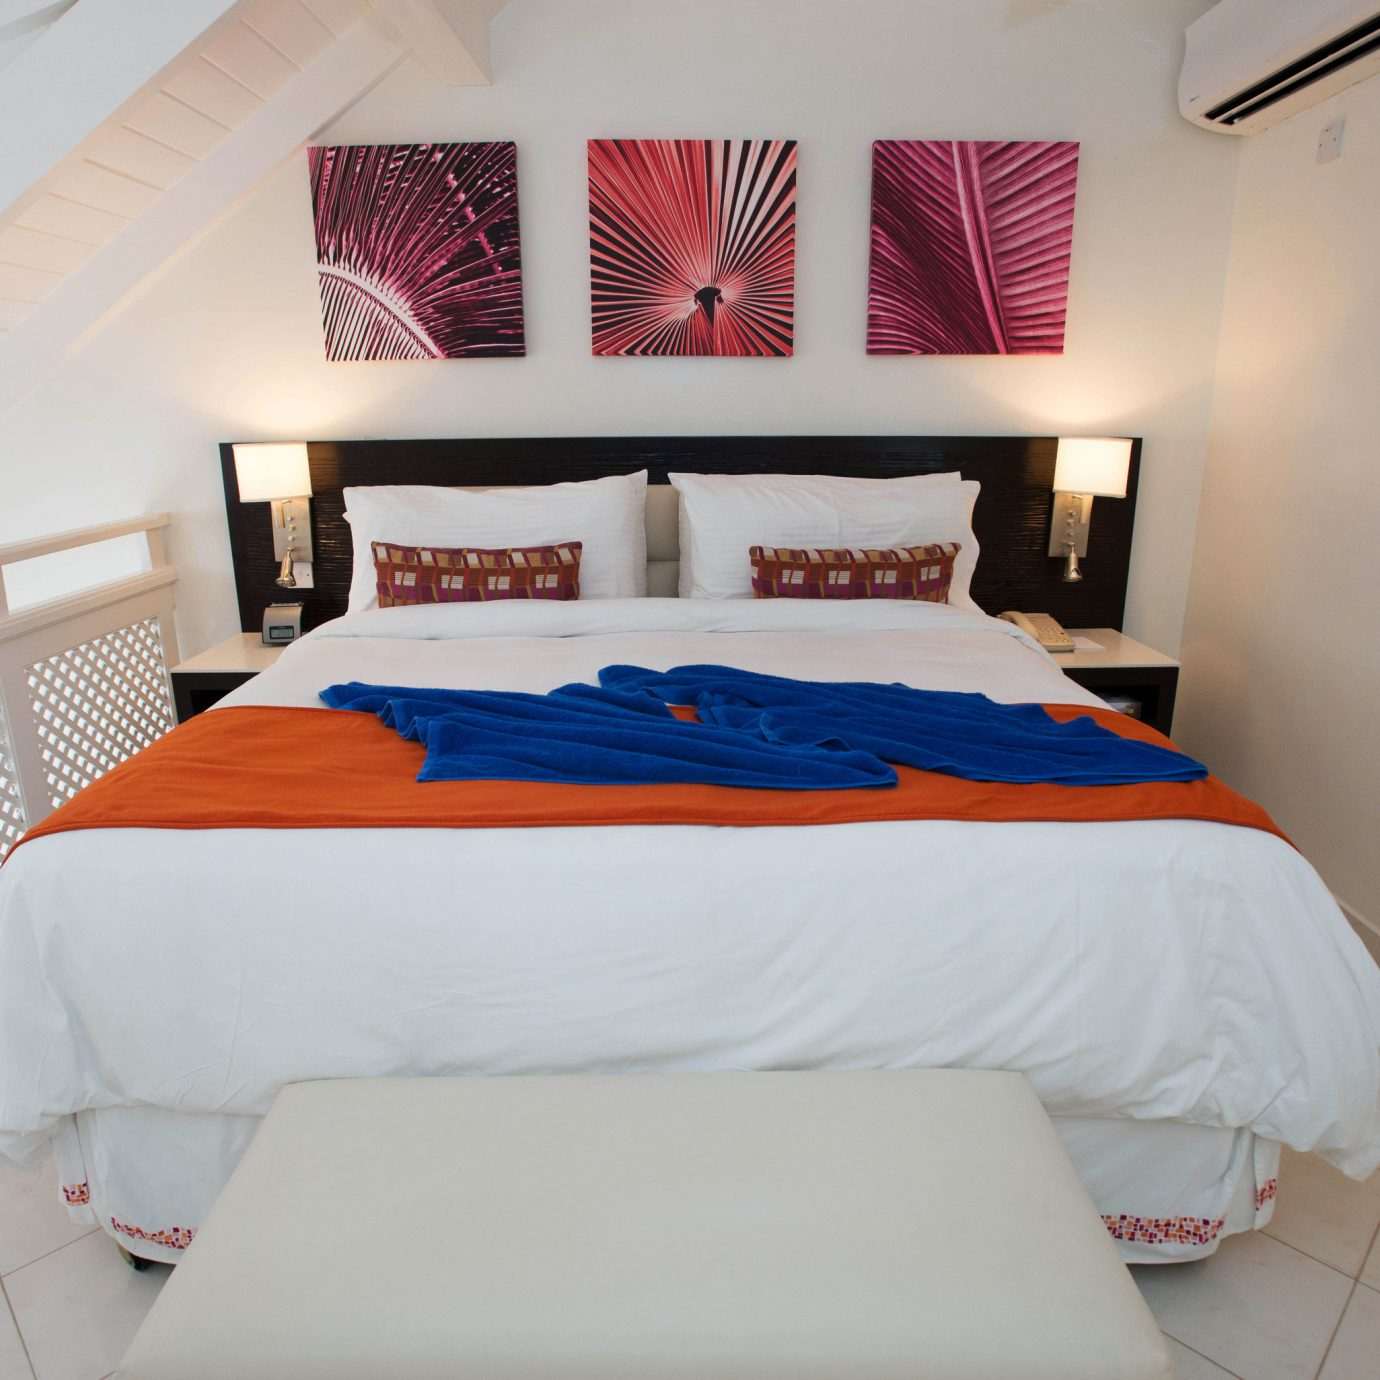 All-Inclusive Resorts Hotels property Bedroom white cottage bed sheet Suite